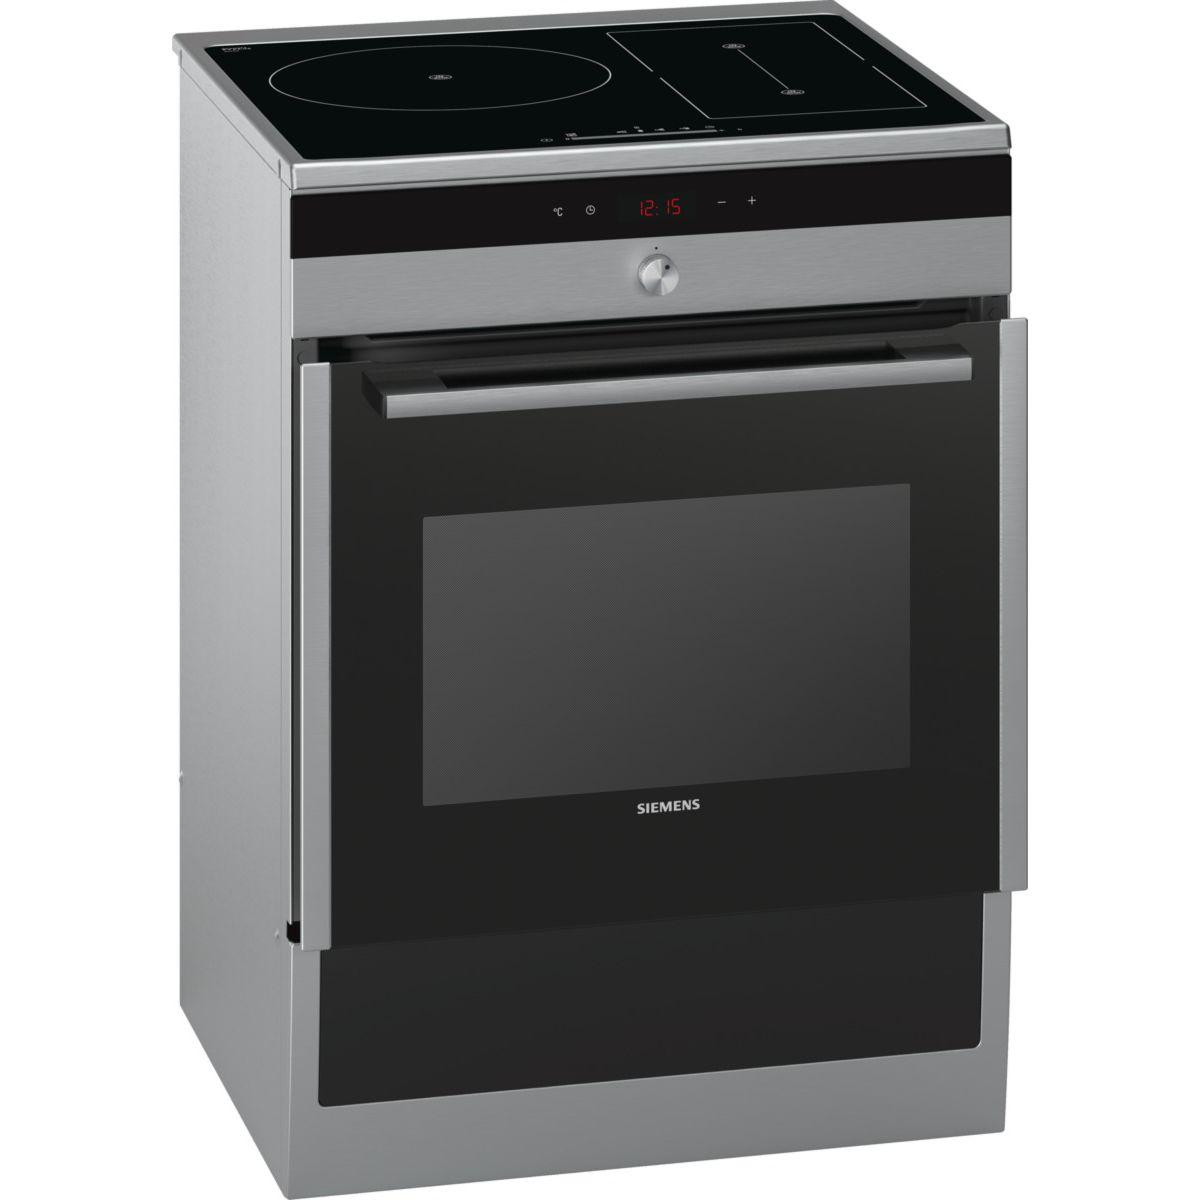 Cuisinière induction siemens ha857580f (photo)